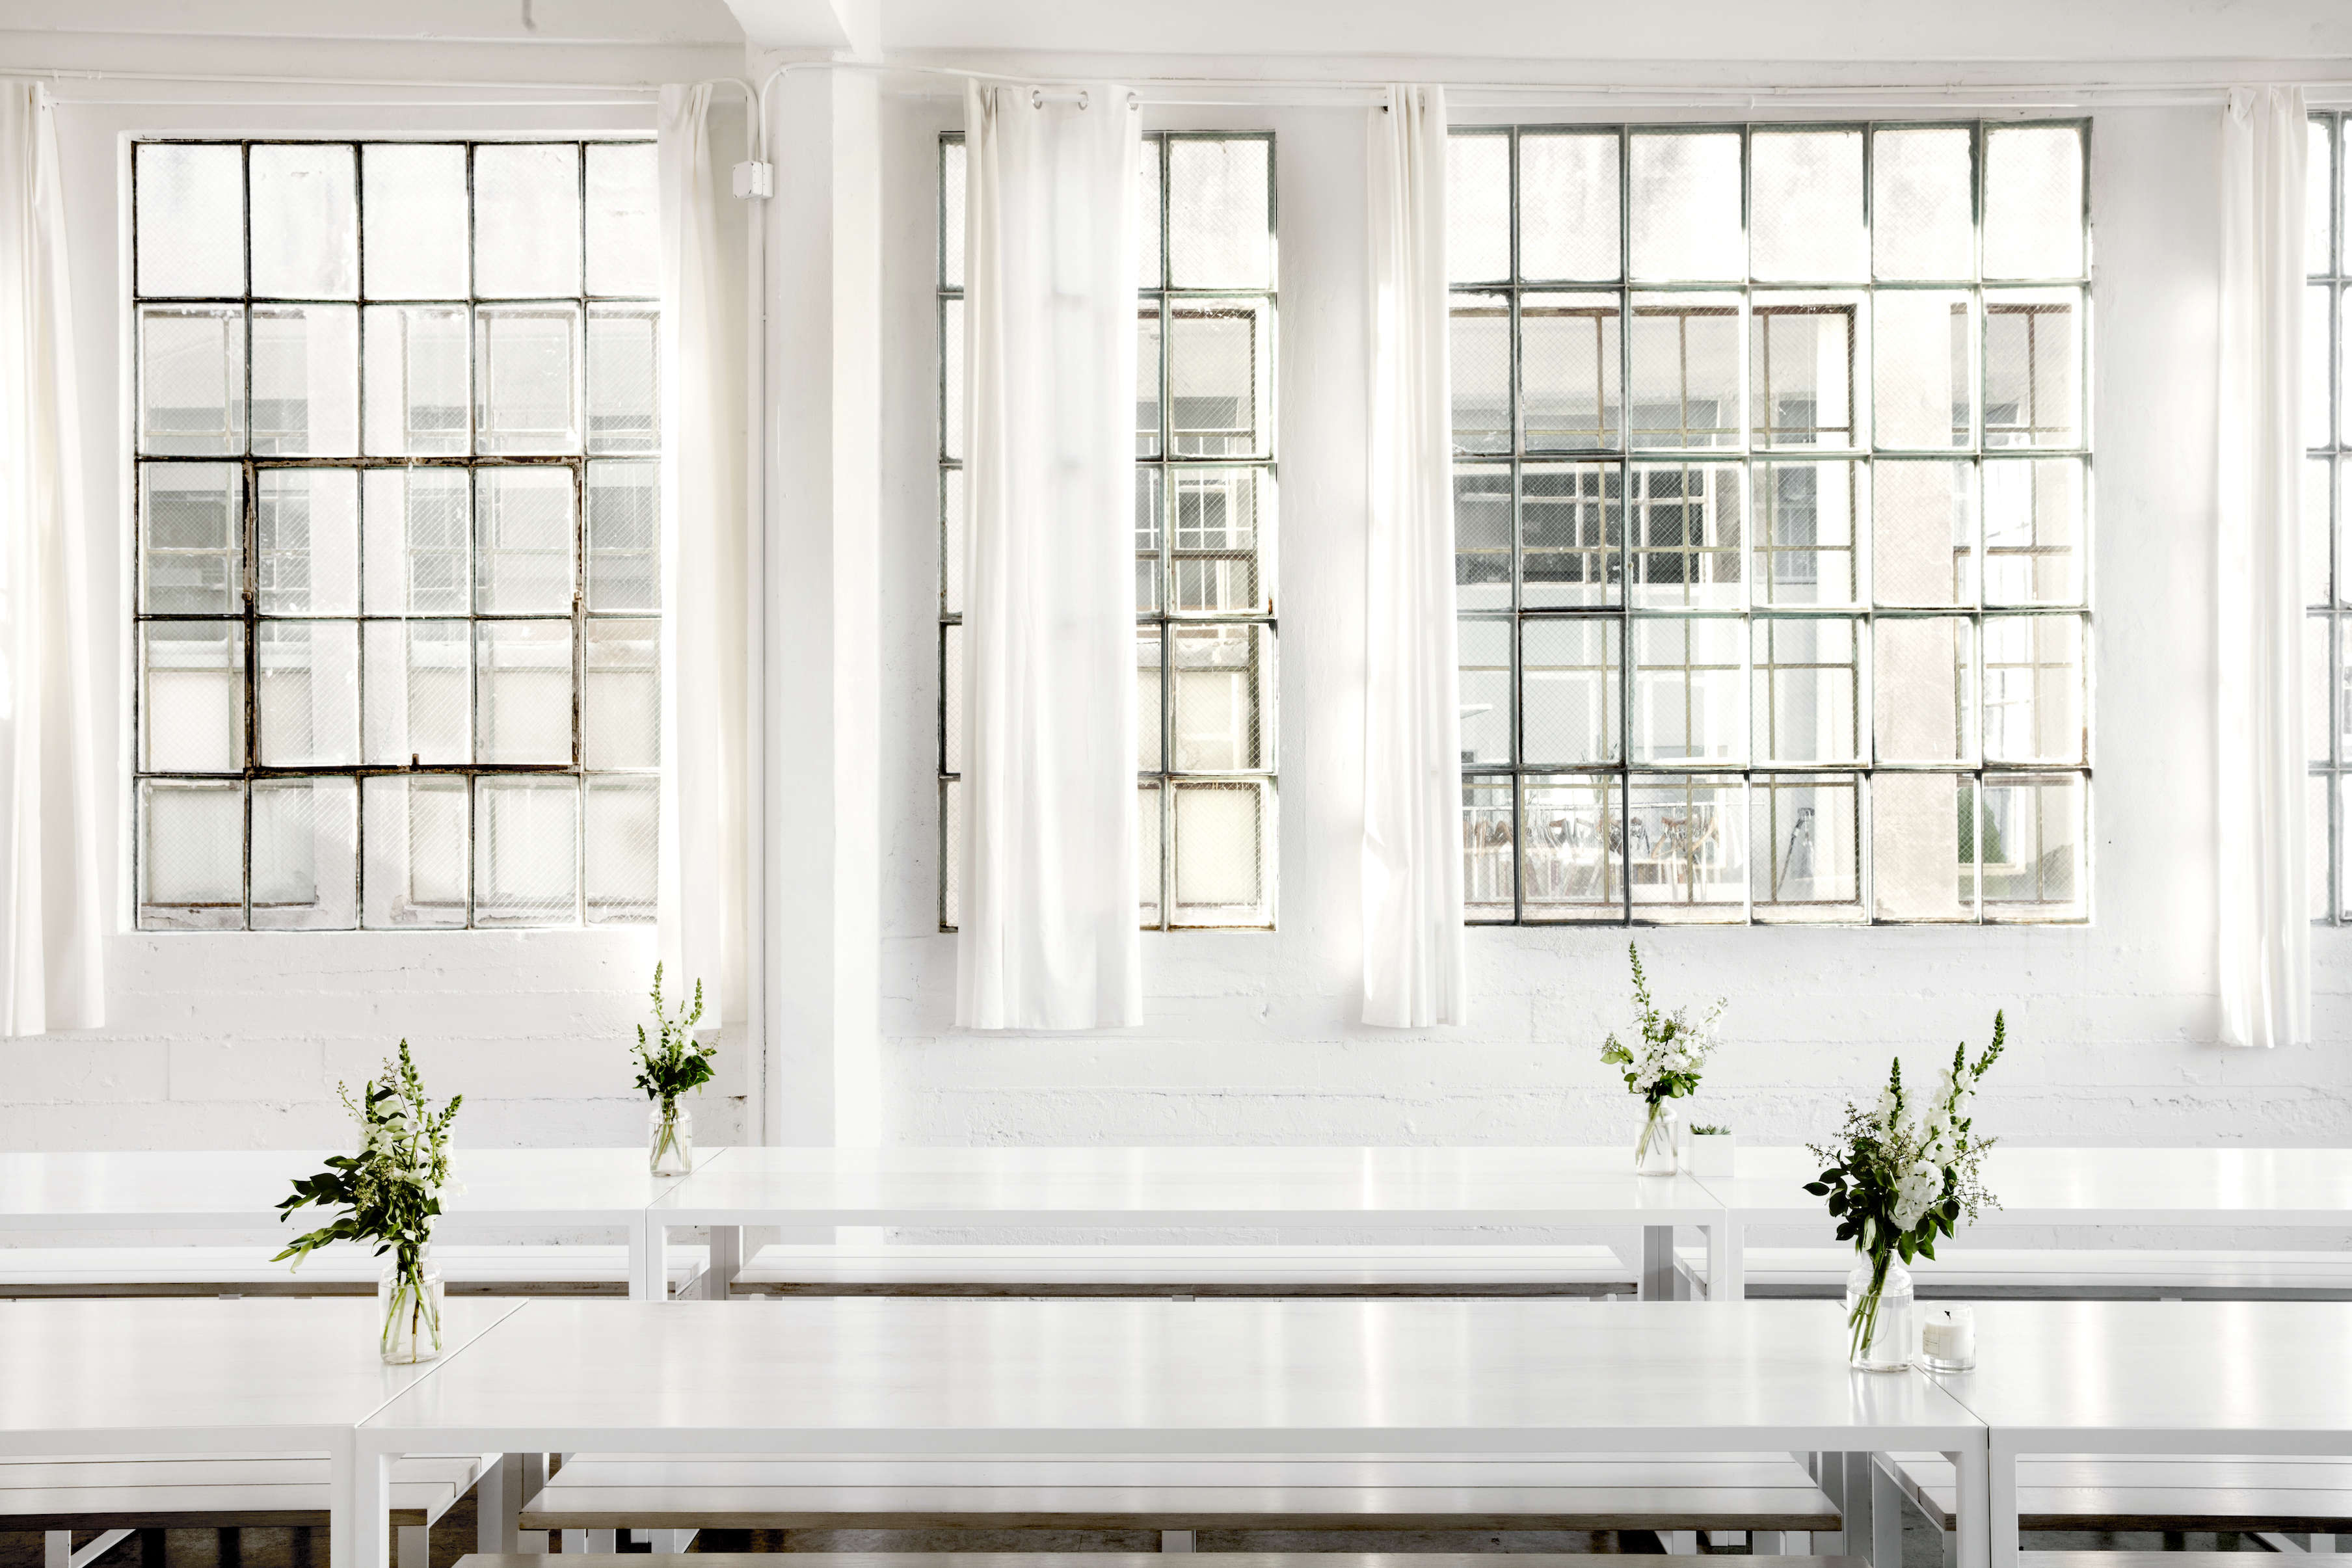 White picnic tables by Ohio Design in Everlane's lofty white office in SF, Carlos Chavarría photo | Remodelista